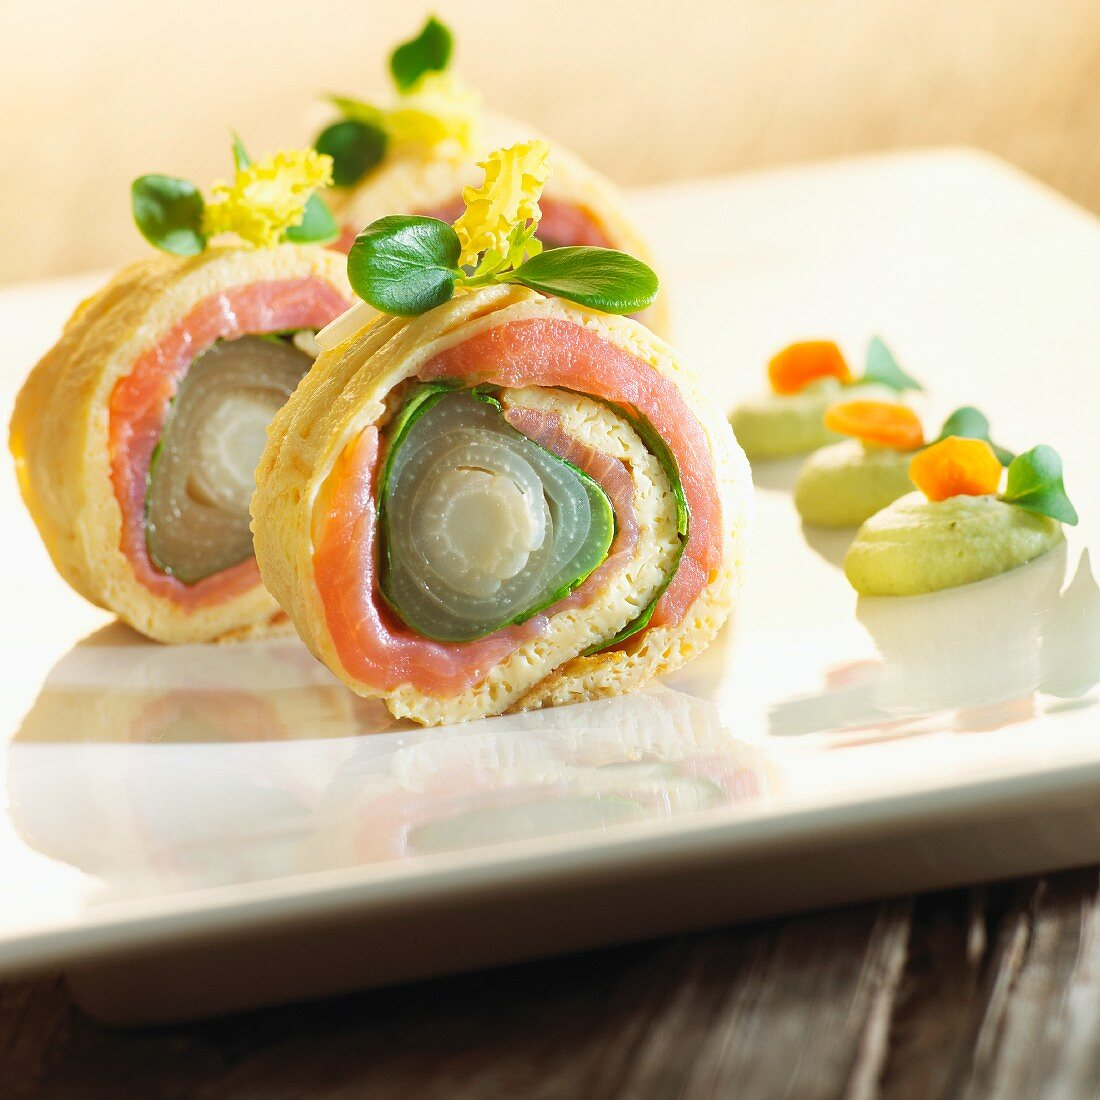 Omelette rolls filled with smoked salmon and chicory